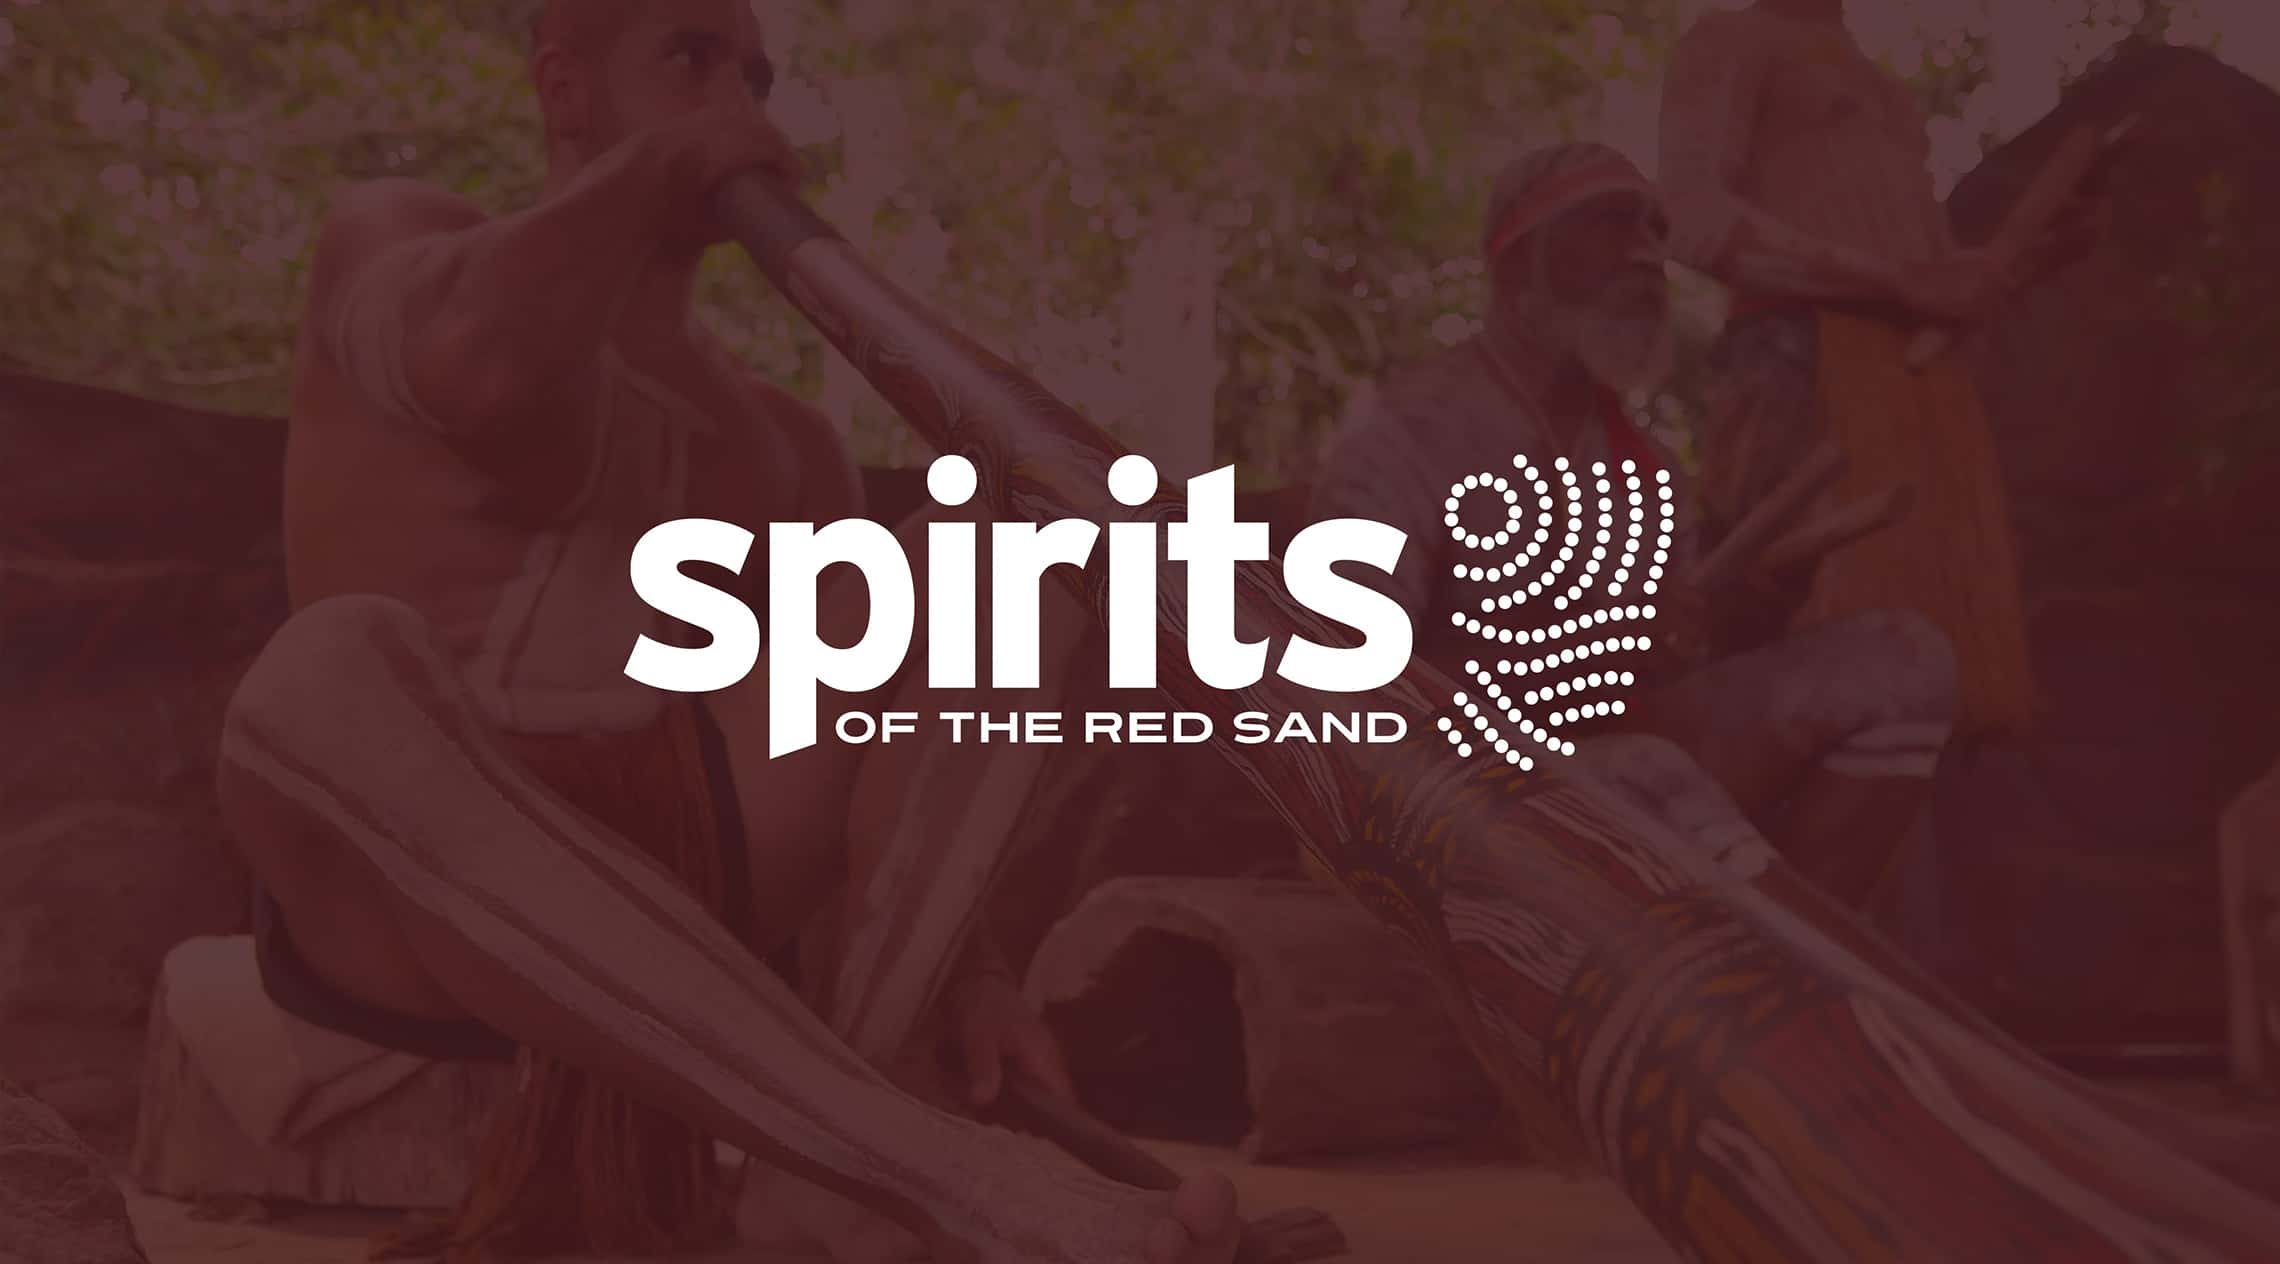 Spirits of the Red sand - Claire Nichols